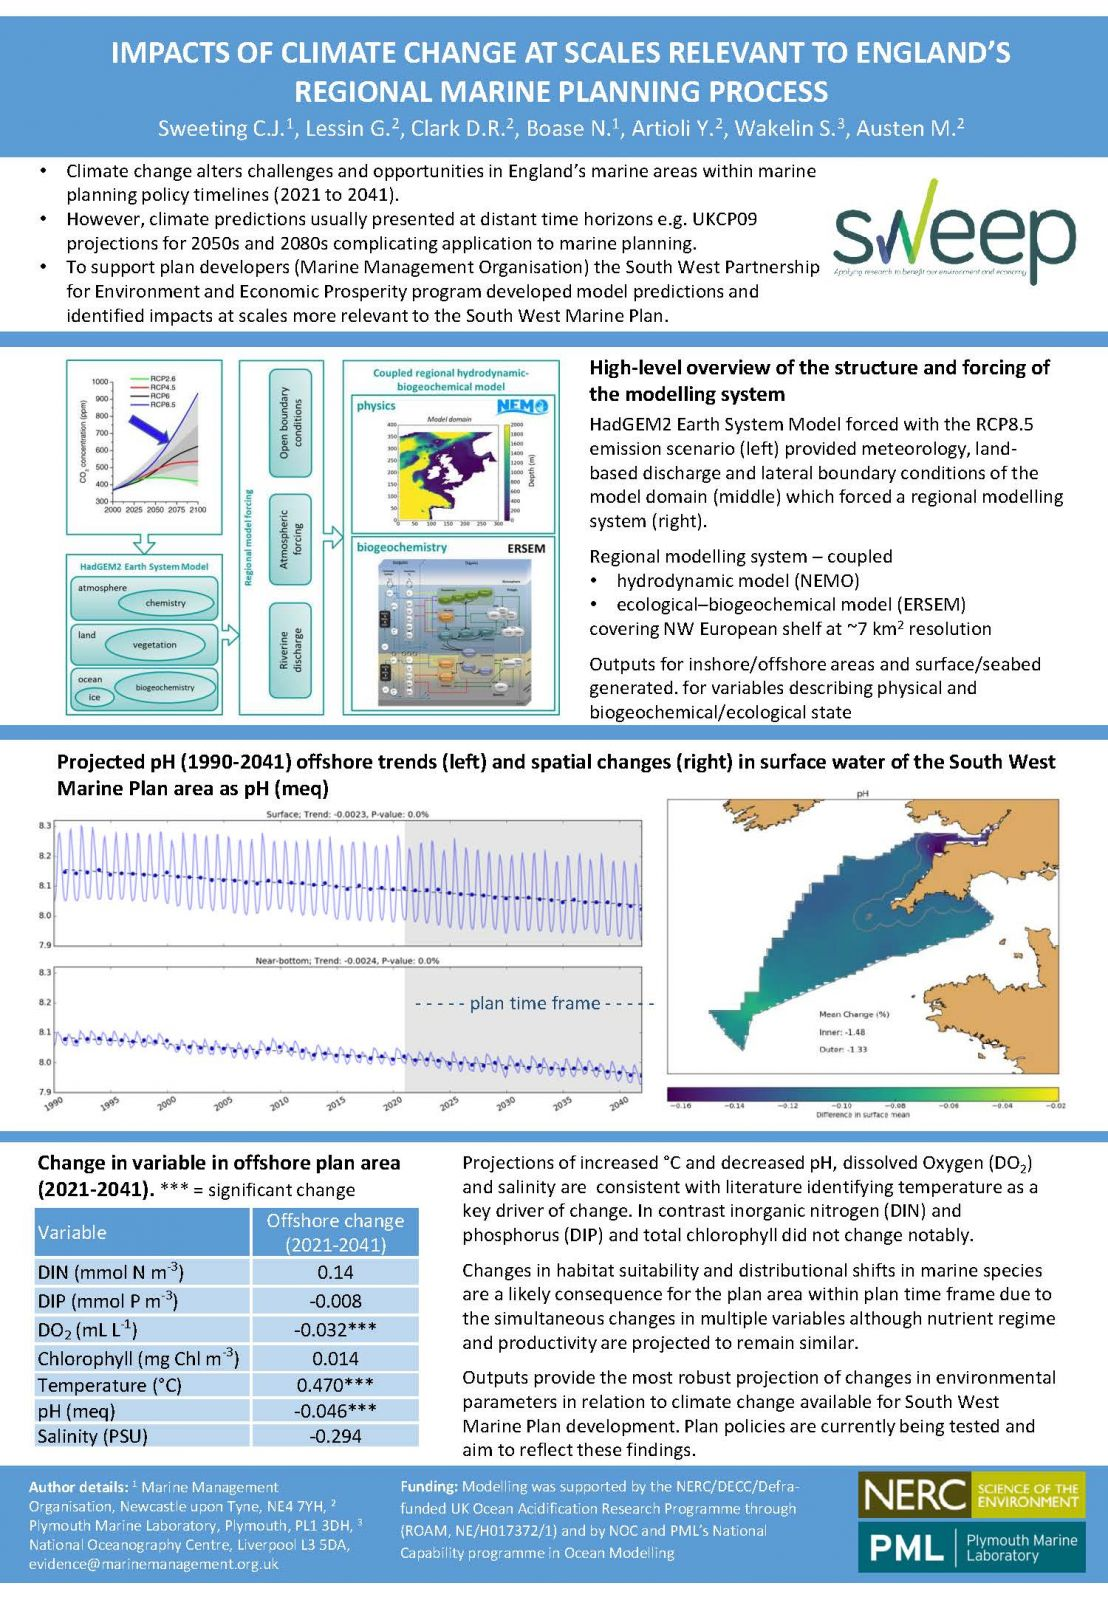 IMPACTS OF CLIMATE CHANGE AT SCALES RELEVANT TO ENGLAND'S REGIONAL MARINE PLANNING PROCESS poster